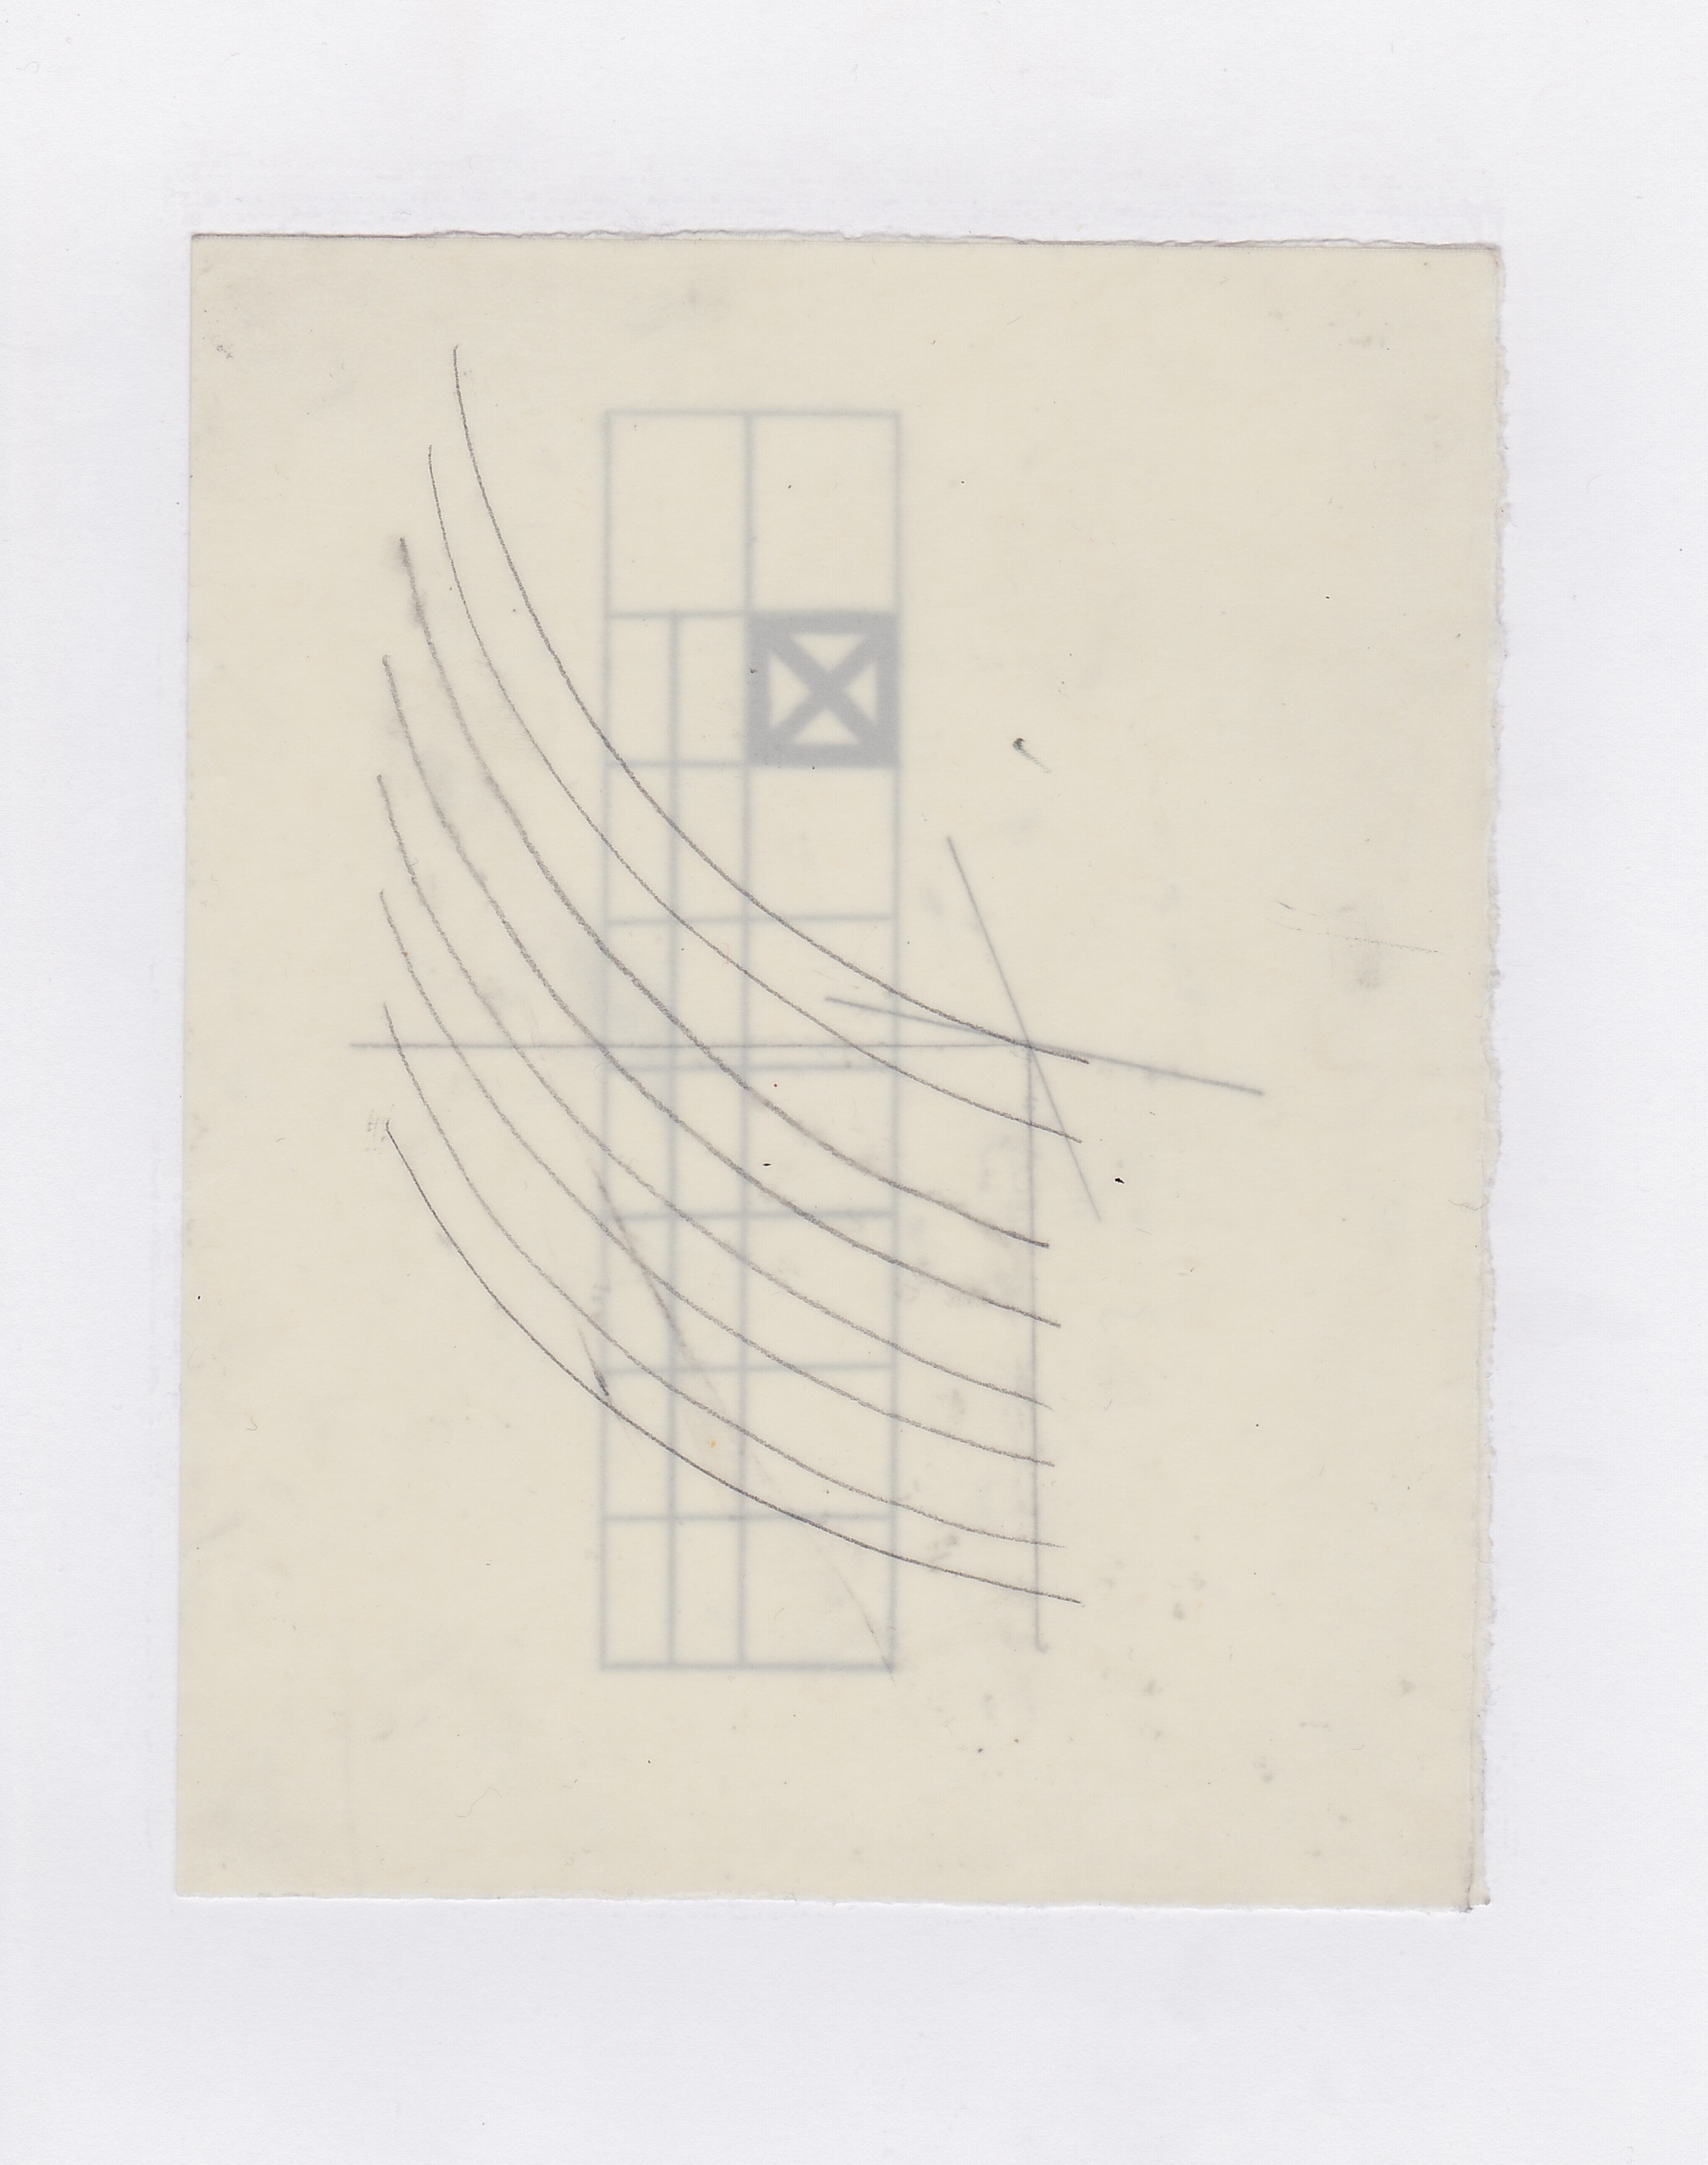 Untitled (the city, observations 06)  Pencil on oiled fabriano paper.  140mm x 180mm  December 2013.